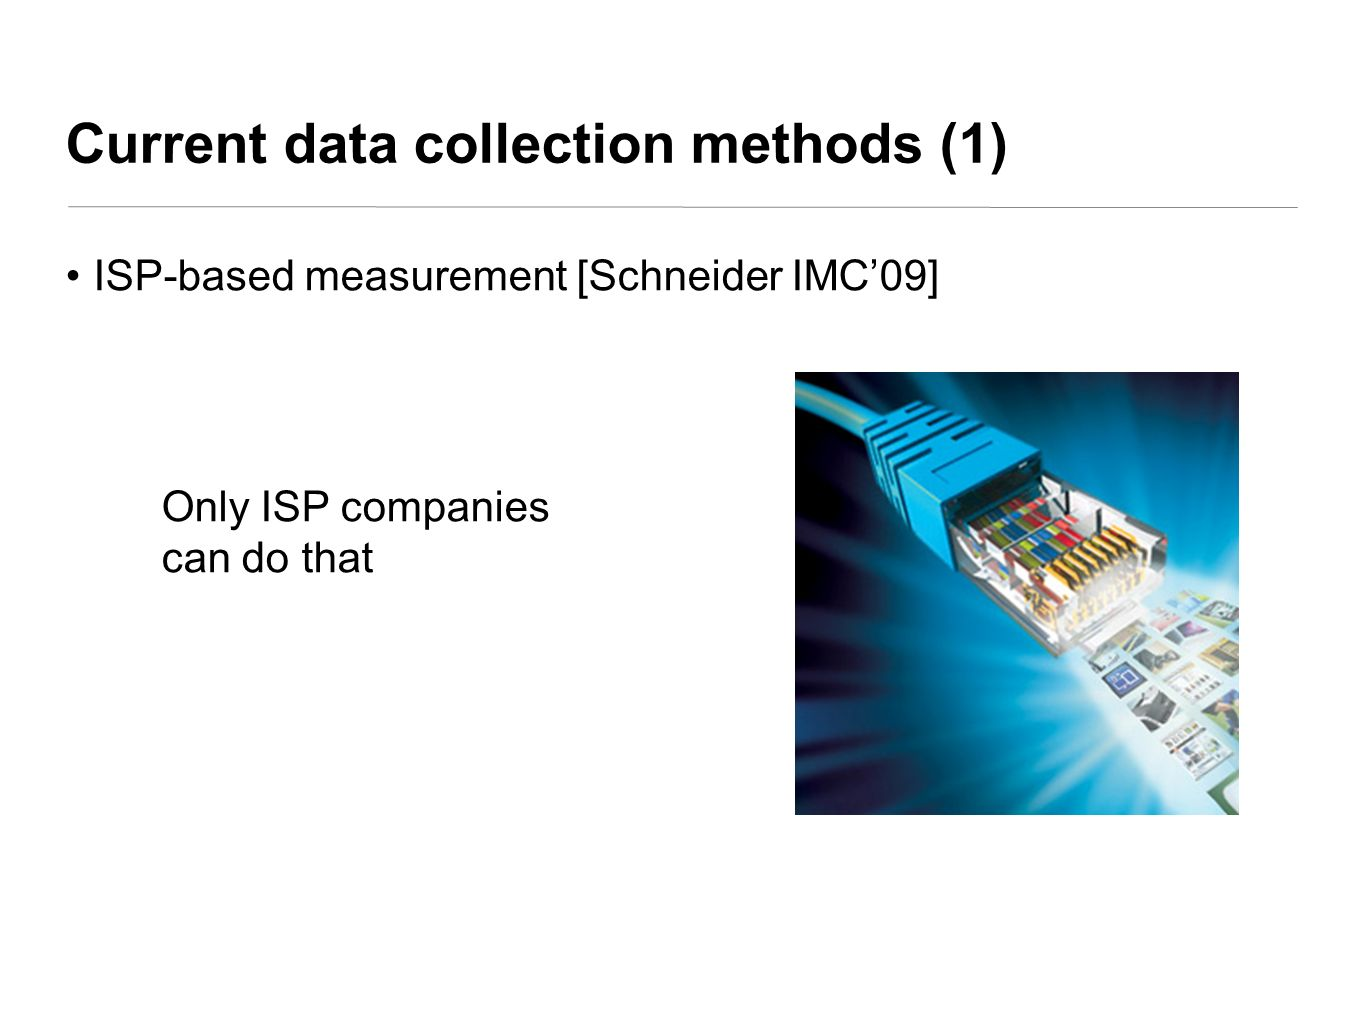 Current data collection methods (1)